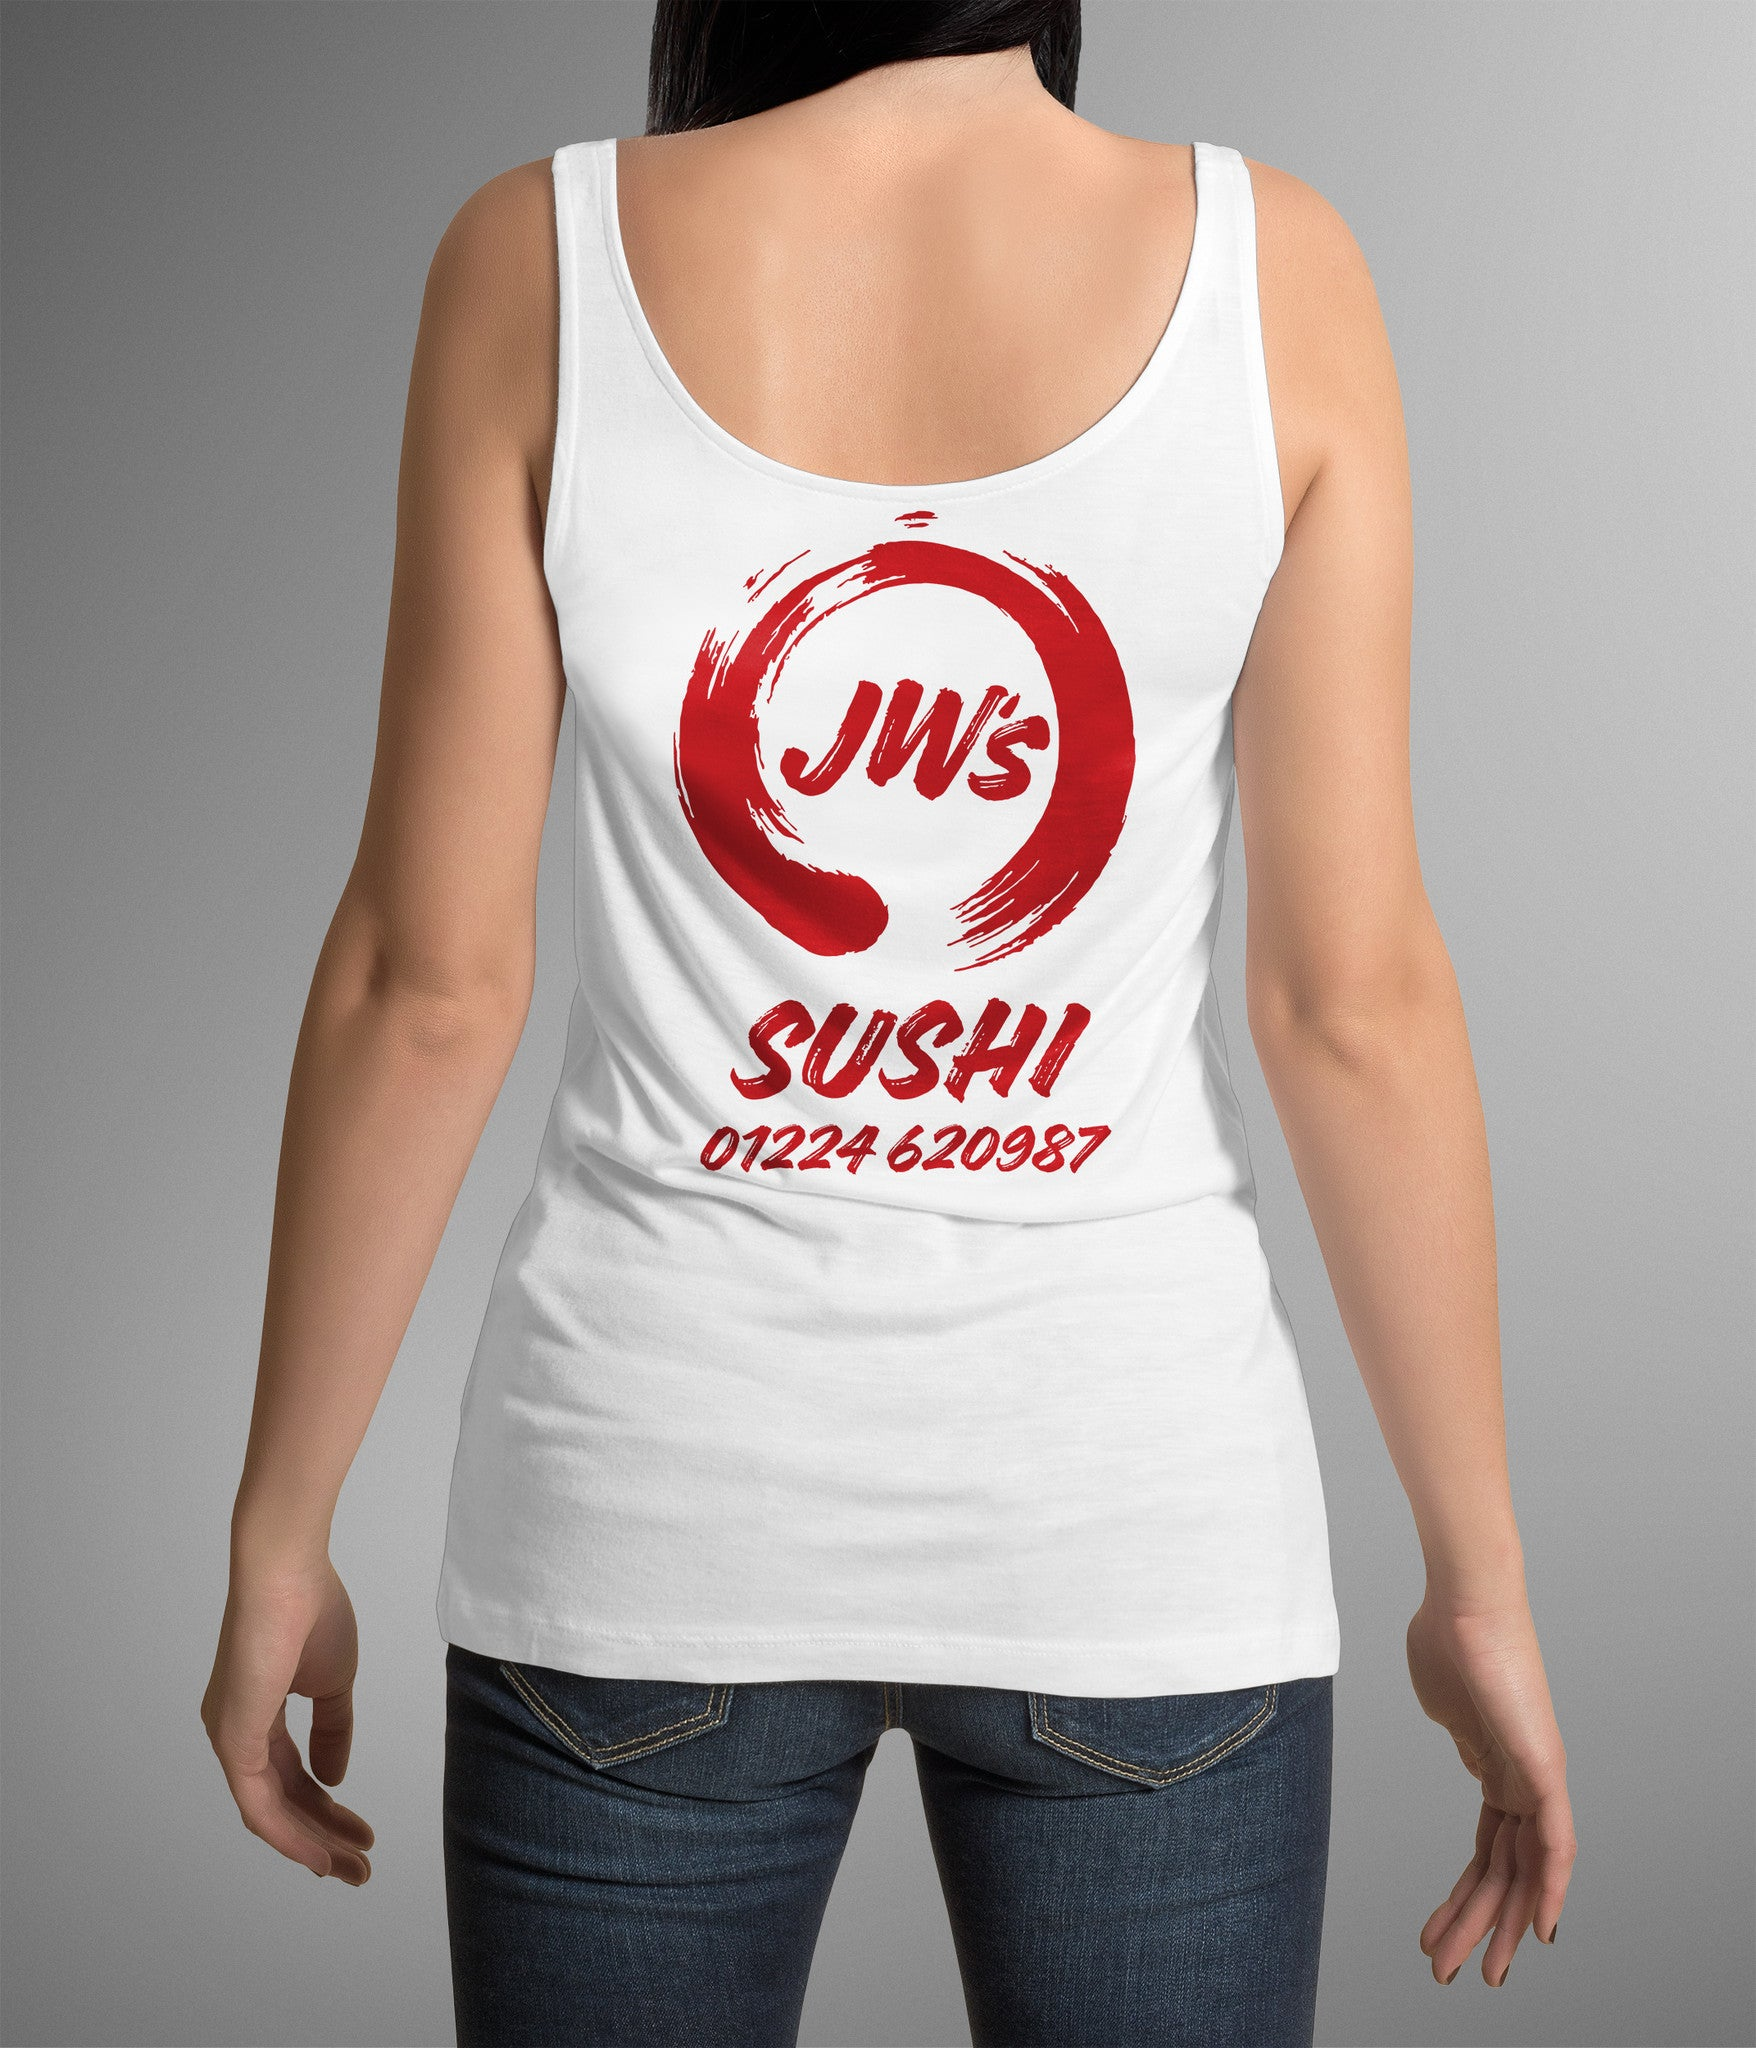 JW Sushi Ladies Tank Top Custom T Shirt by Lets Get Shirty Dot Com